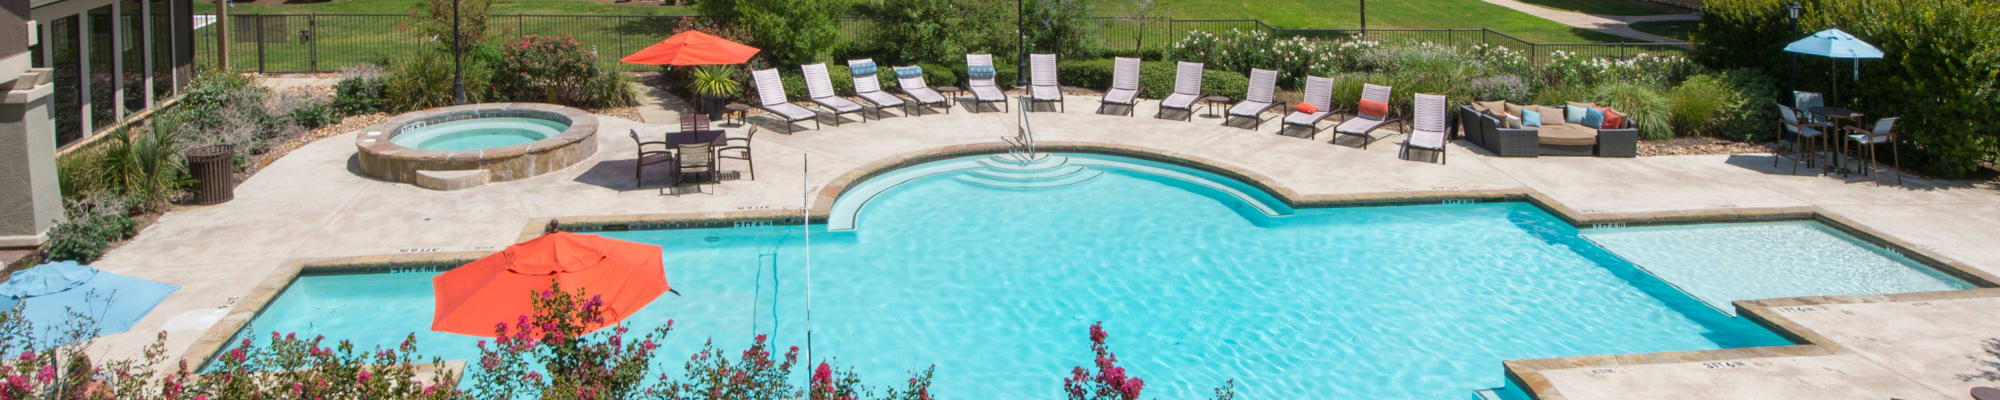 1,2 & 3 bedrooms offered at apartments in Bryan